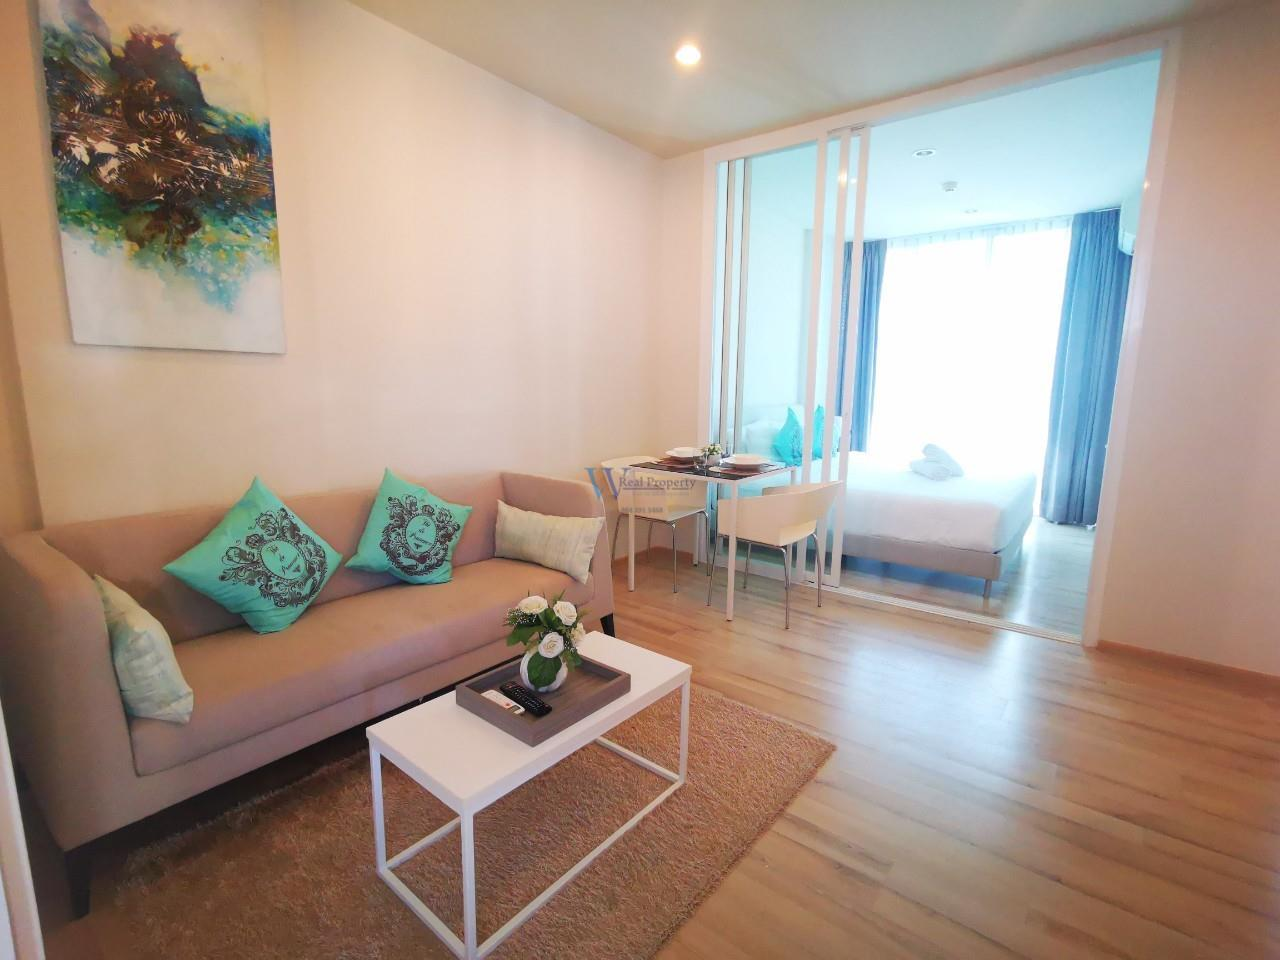 W Real Property Agency's 1 Bedroom Condo for rent in The Base Downtown Phuket, Wichit, Phuket 27